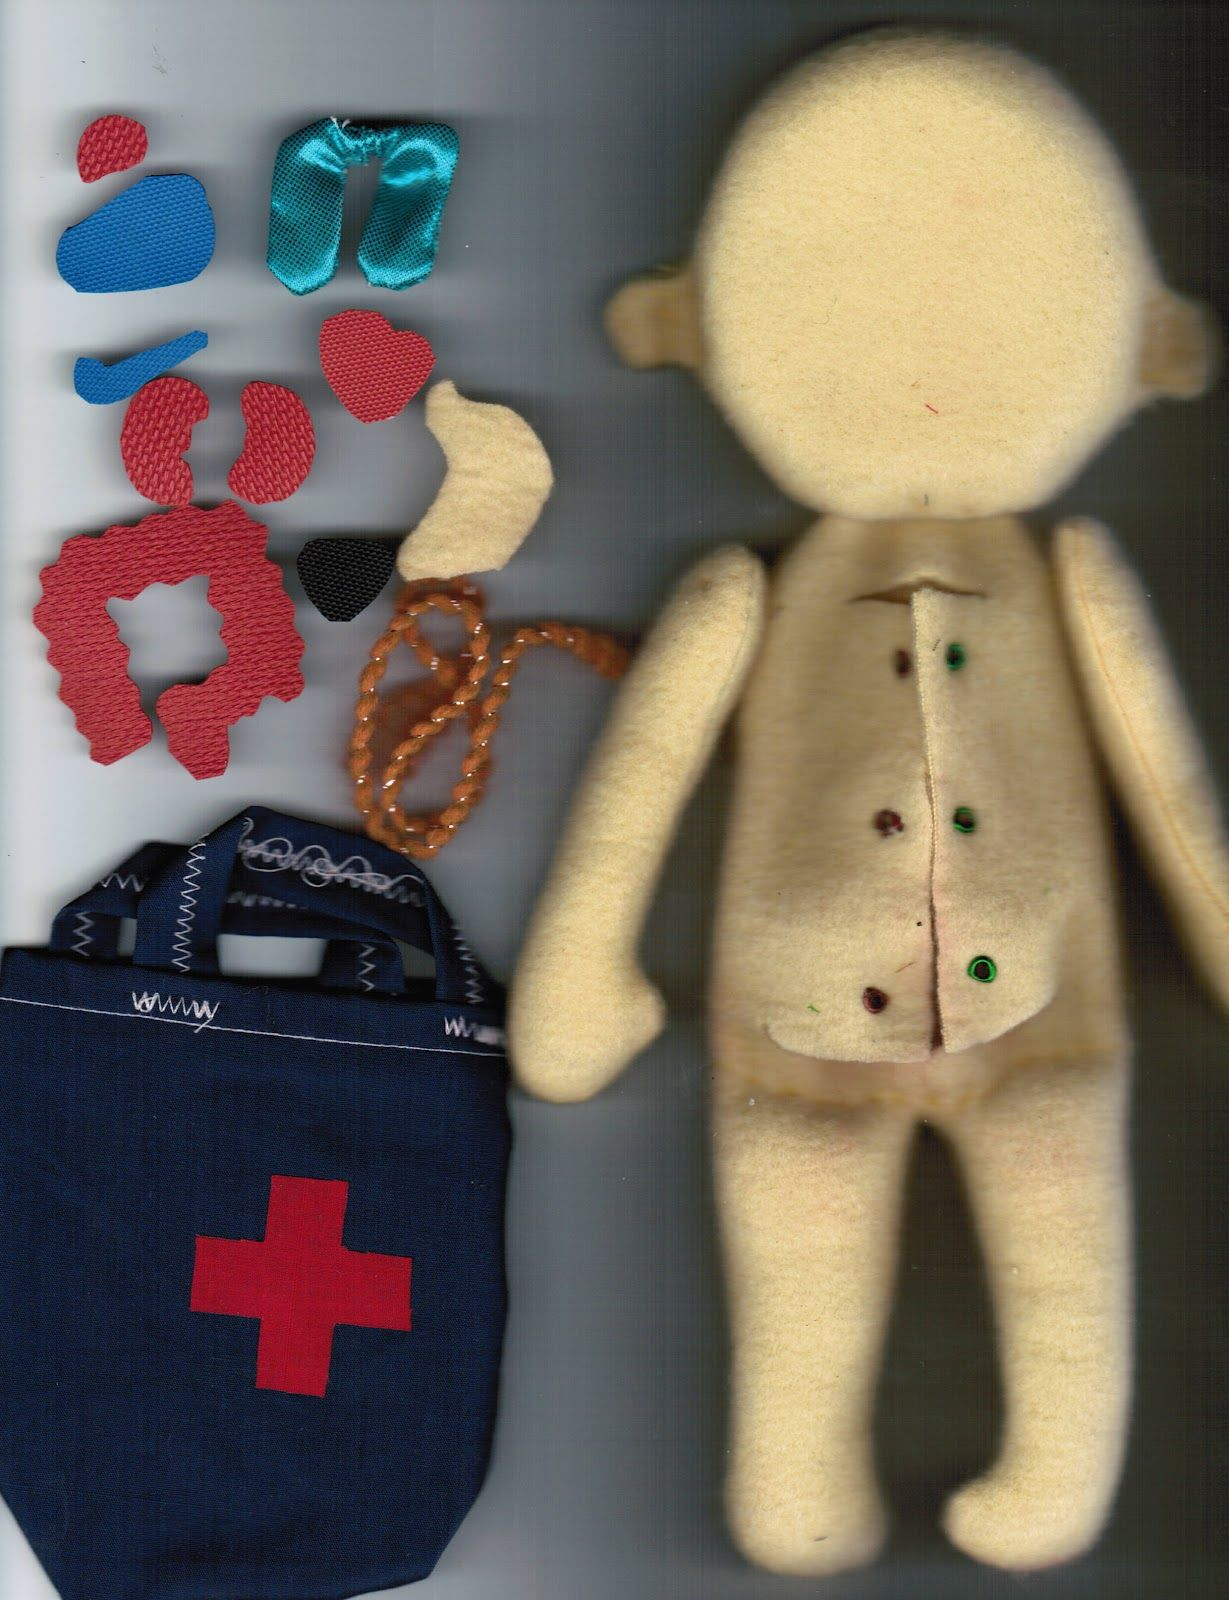 Homemade doctor doll I think my future doctor is going to love